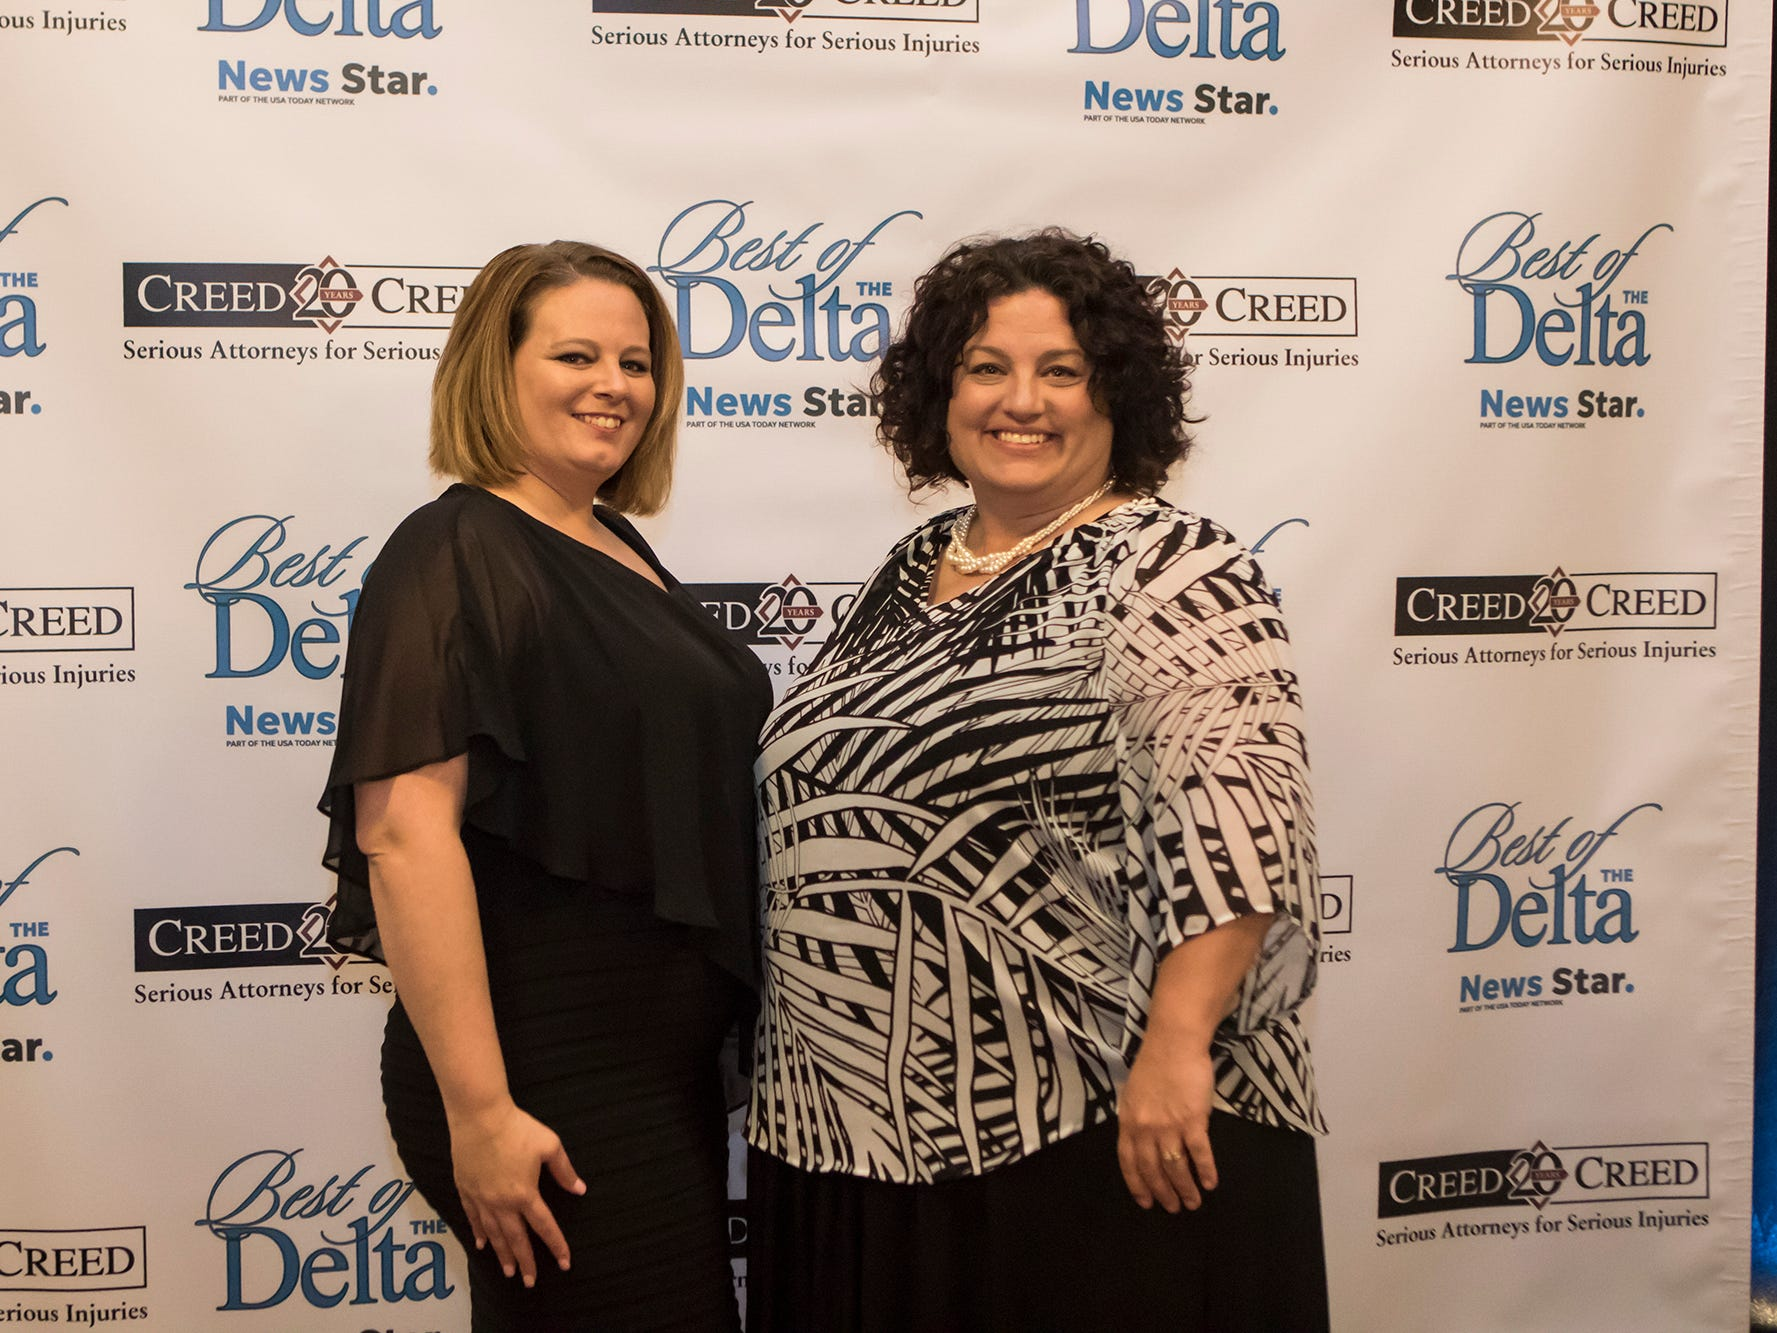 The annual Best of the Delta awards were held at the West Monroe Convention Center in West Monroe, La. on Oct. 9.